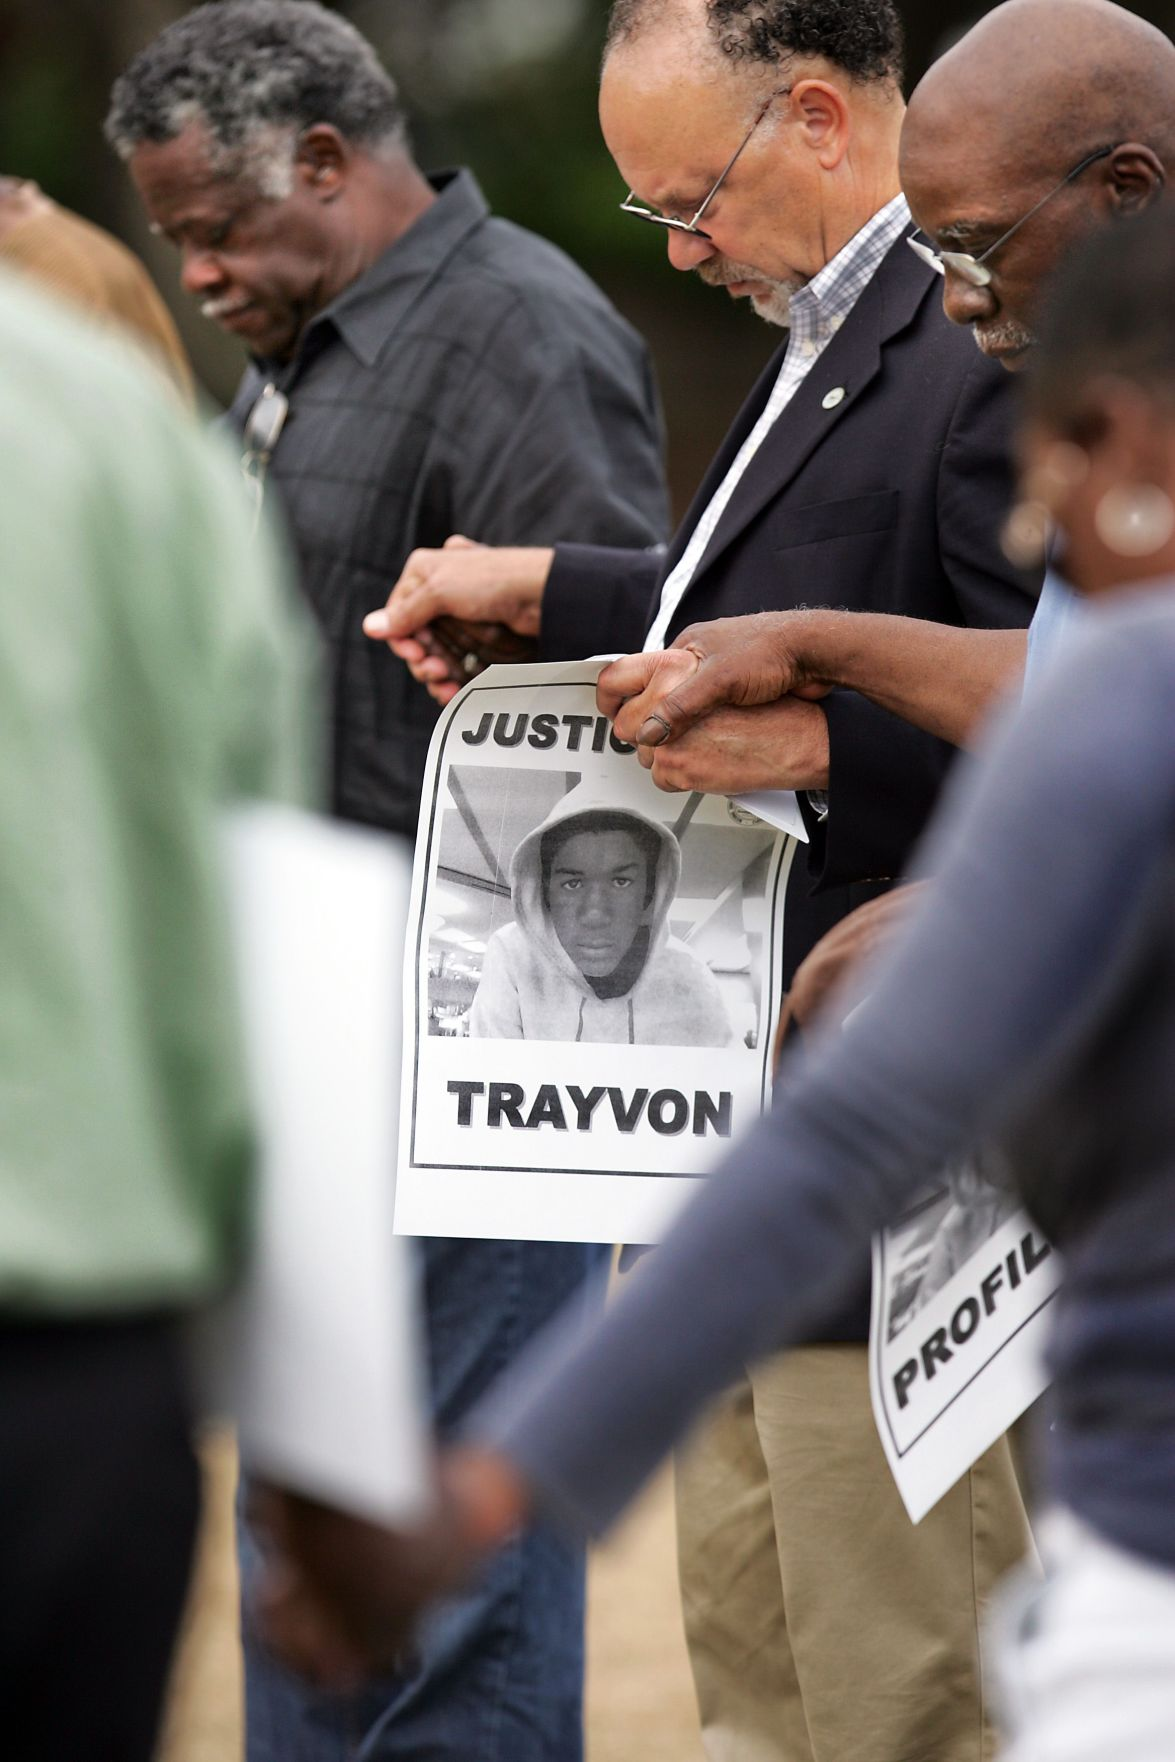 Trayvon rally a cry for change